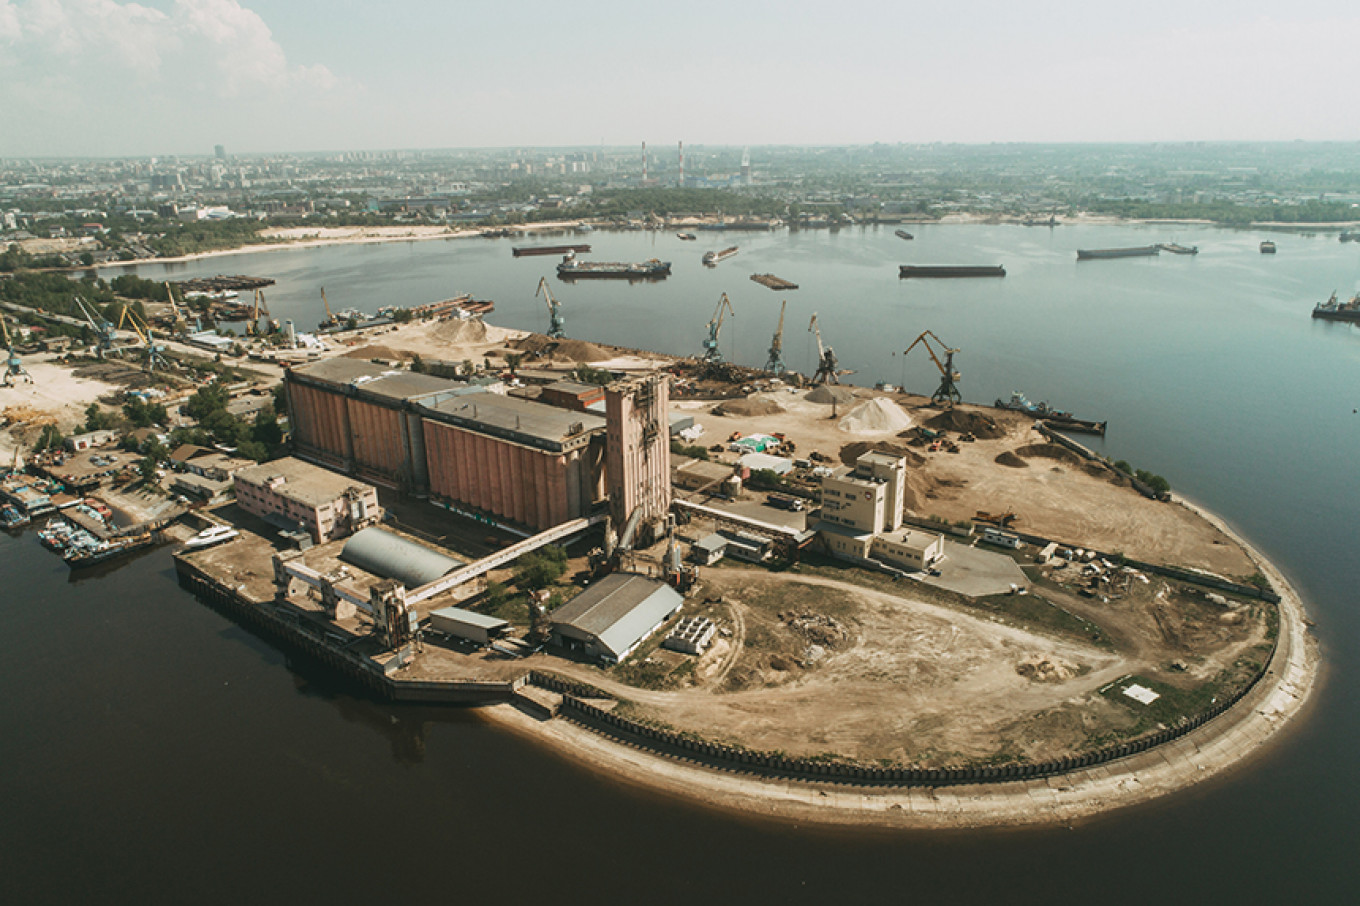 The port elevator site in Kazan as it looks today. The Institute for Urban Development of the Republic of Tatarstan